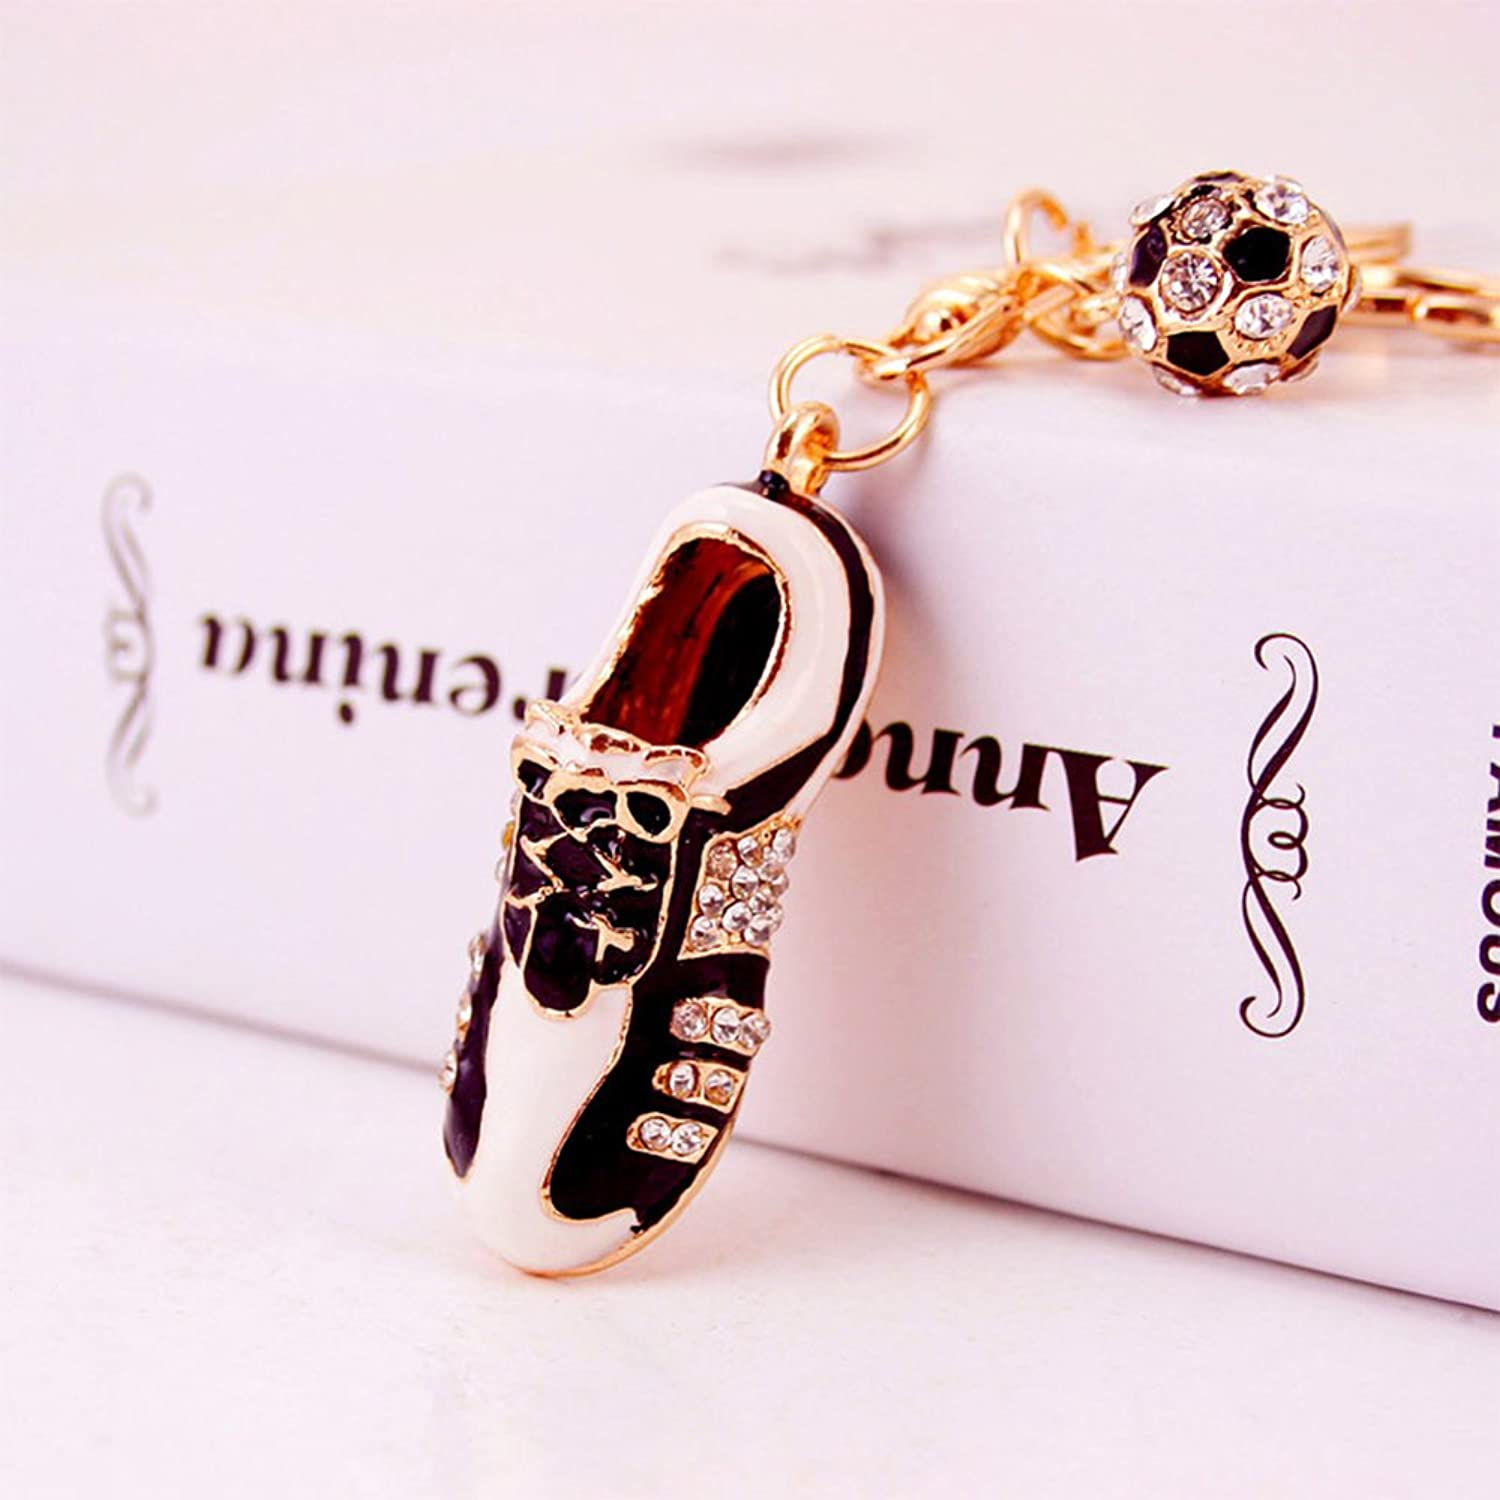 Jzcky Shzrp Football and shoes Crystal Rhinestone Keychain Key Chain Sparkling Key Ring Charm Purse Pendant Handbag Bag Decoration Holiday Gift(golden)